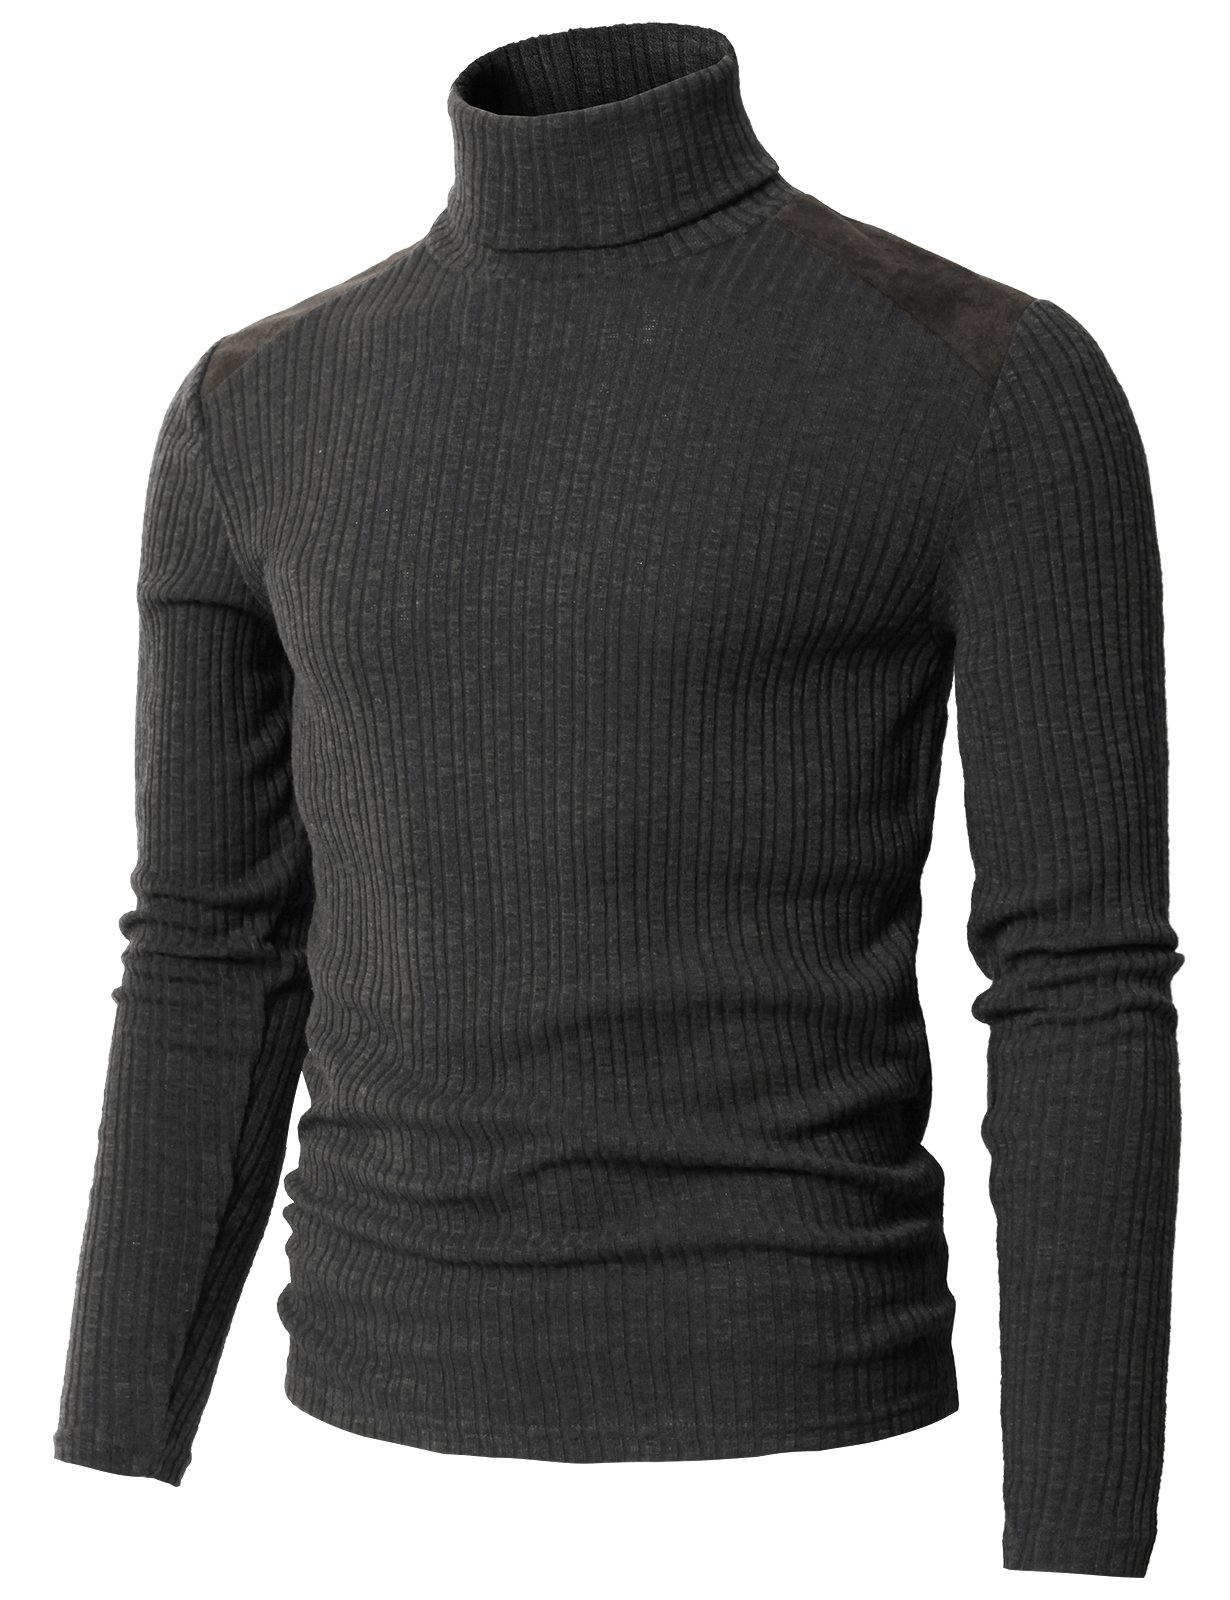 H2H Mens Turtleneck Sweater for Men Wool-Blend Knitted Pullover Slim Fit Charcoal US 3XL/Asia 4XL (CMTTL099) by H2H